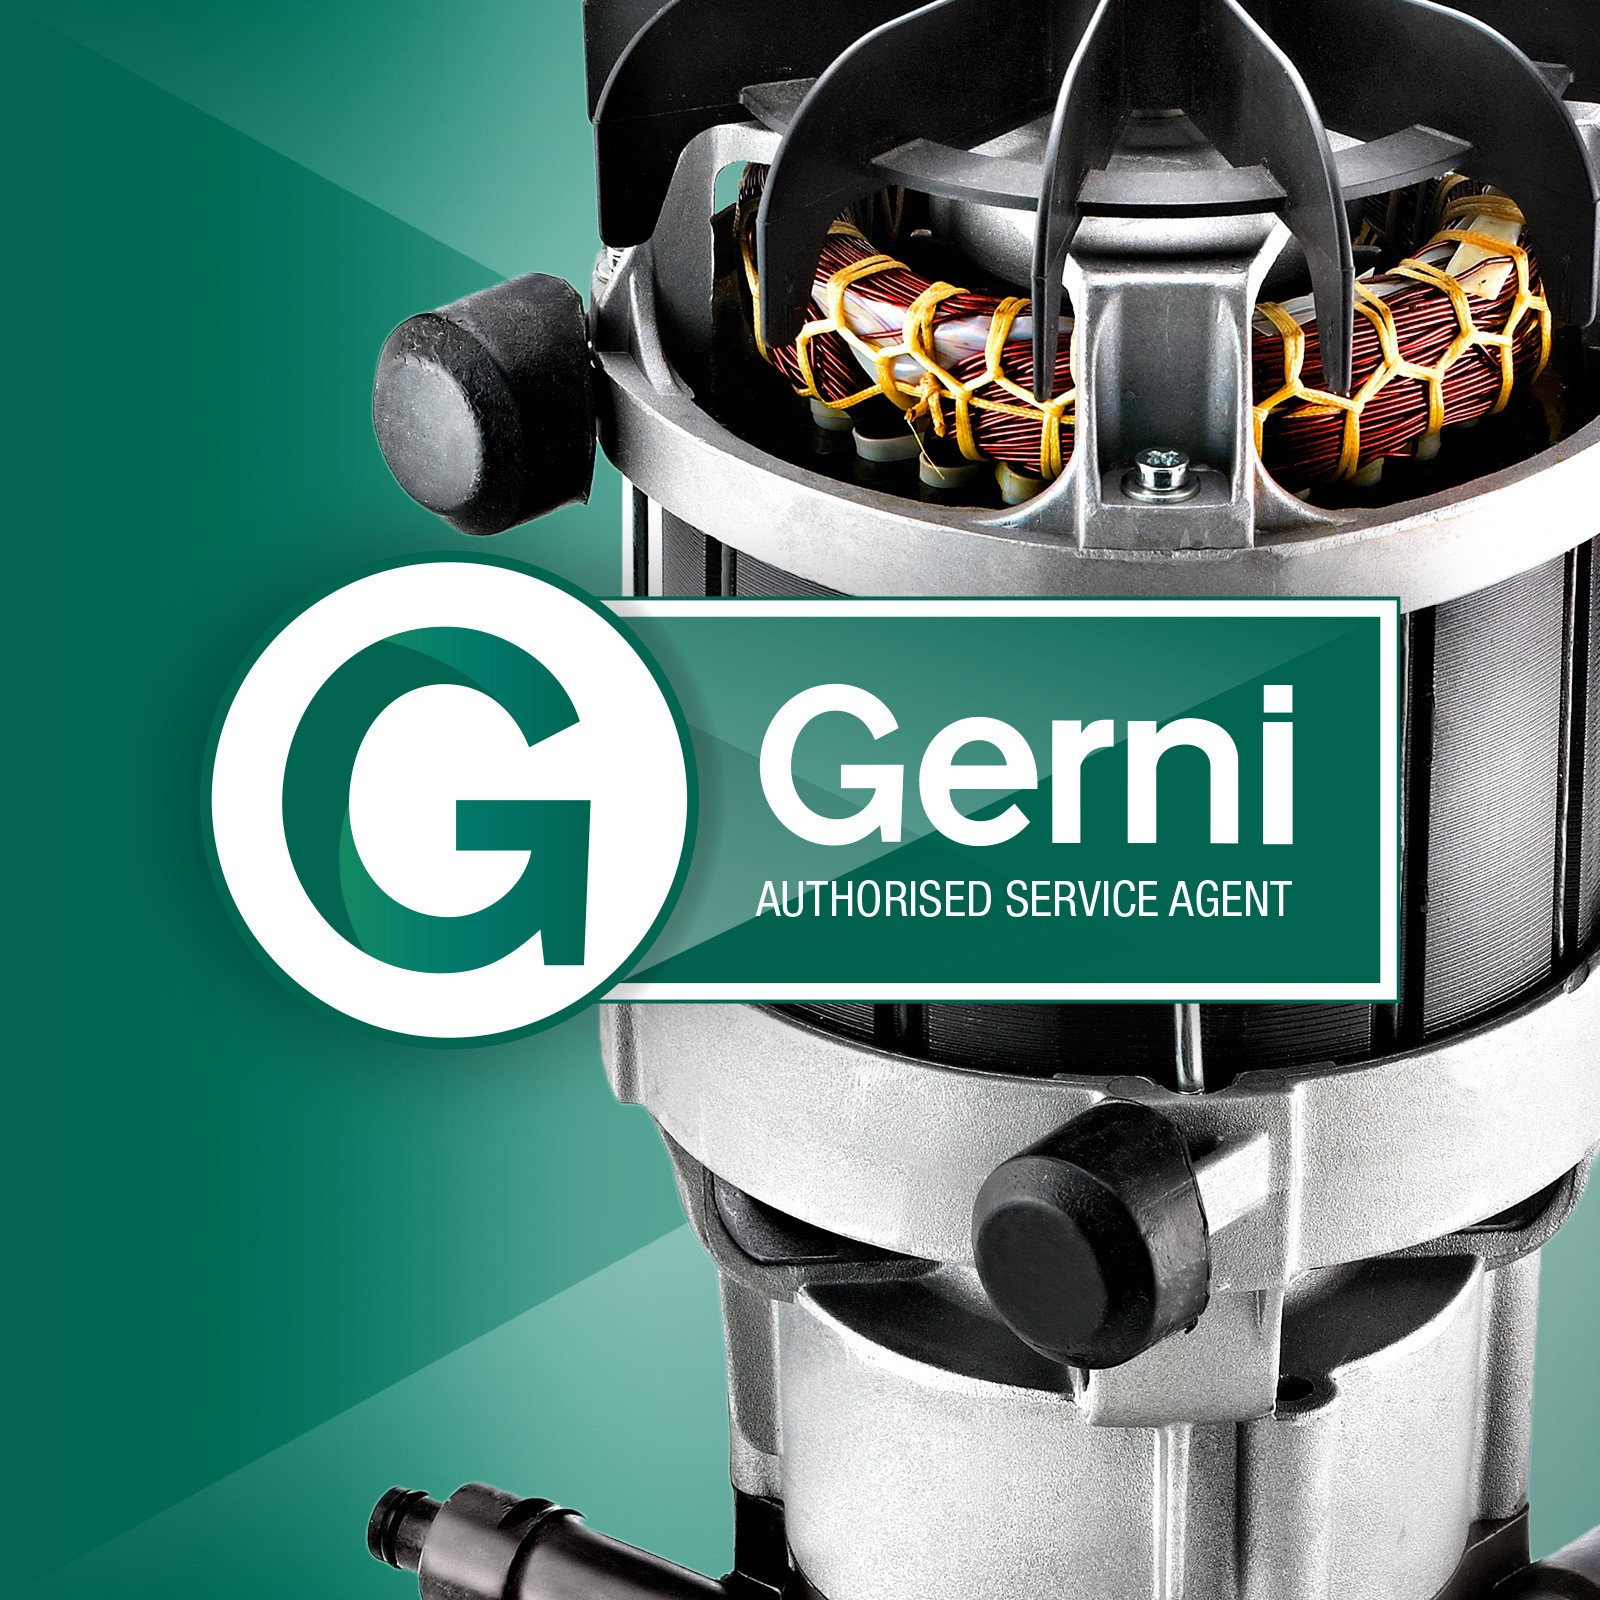 Page Image - Servicing - Gerni Authorised Service Agent